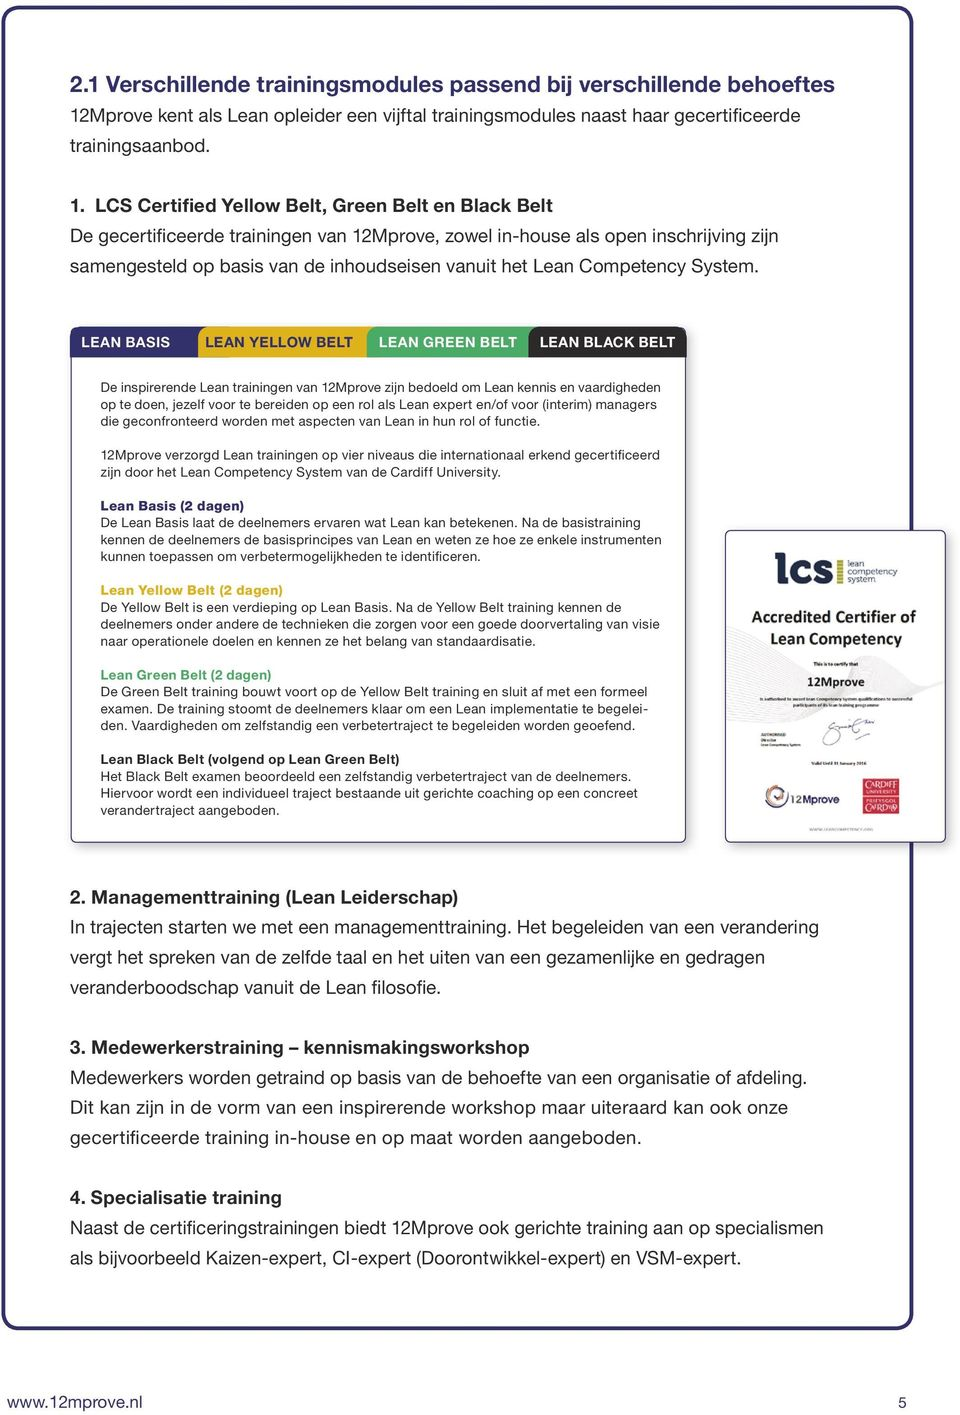 LCS Certified Yellow Belt, Green Belt en Black Belt De gecertificeerde trainingen van 12Mprove, zowel in-house als open inschrijving zijn samengesteld op basis van de inhoudseisen vanuit het Lean